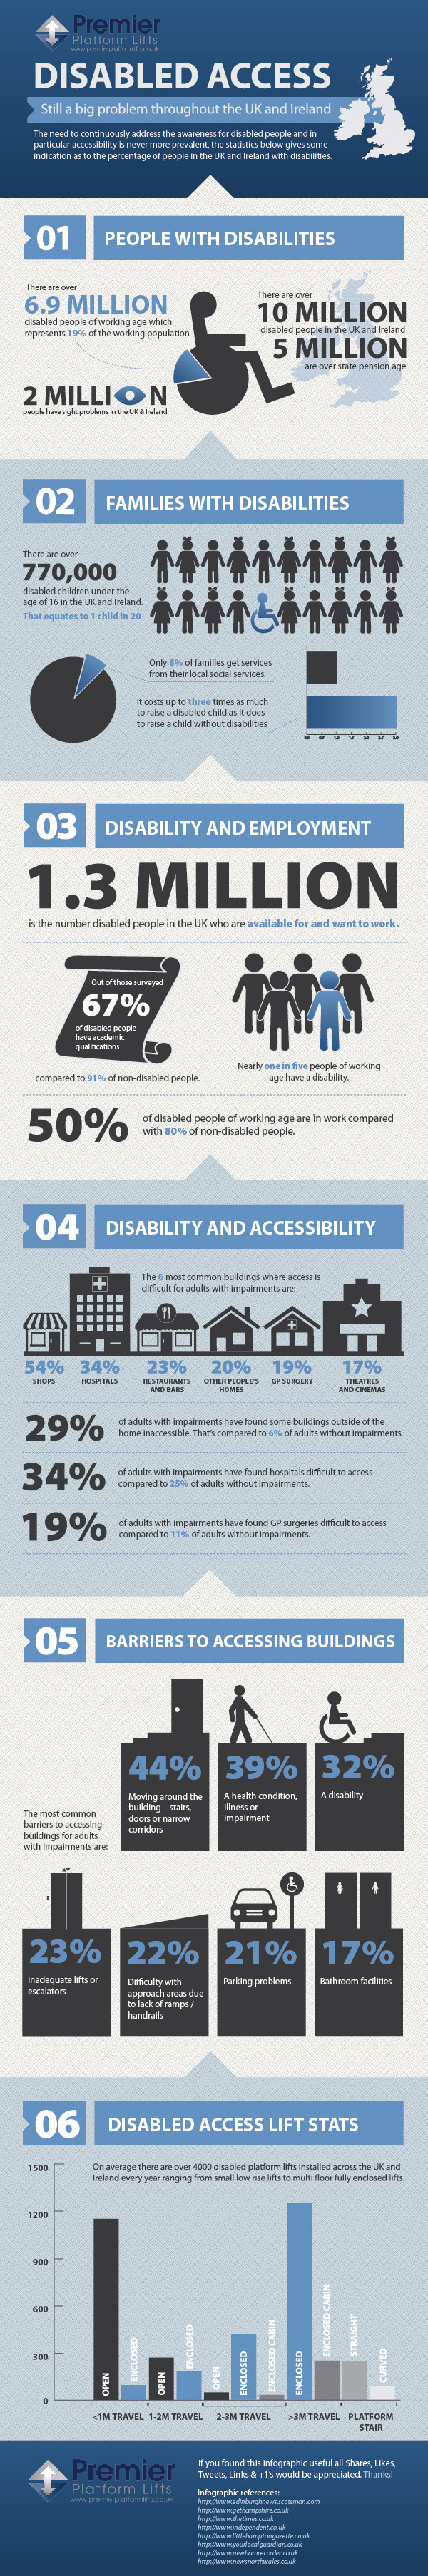 Disabled Access – Still A Major Problem